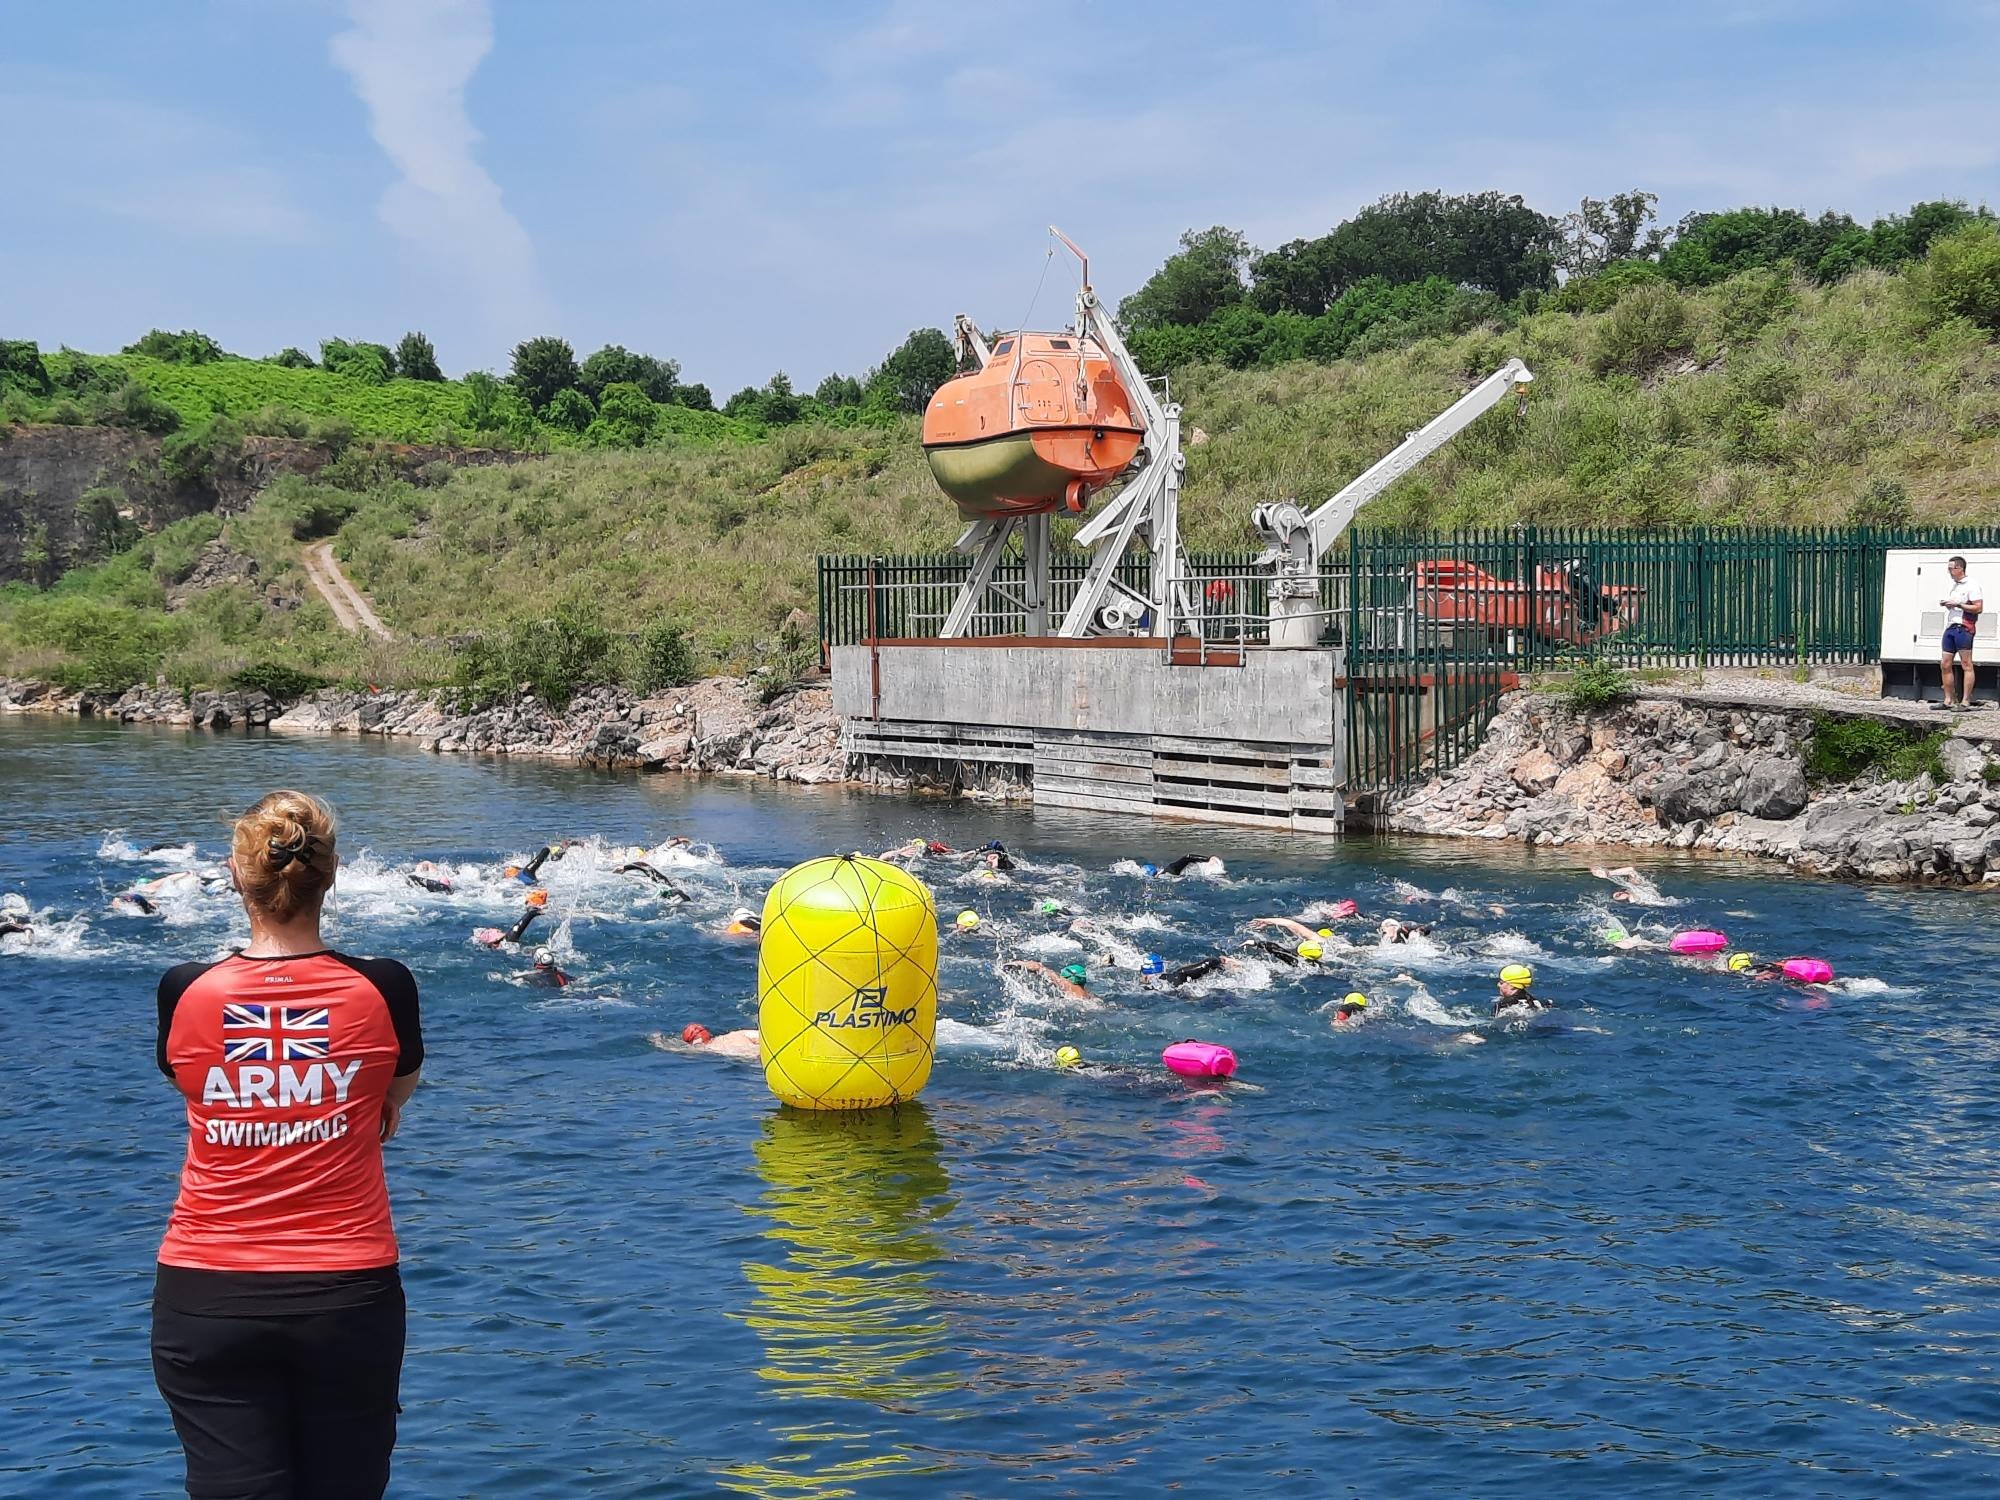 Army Swimming Union – Individual Open Water Swimming Series  Event 2 – Wed 14 Jul 21